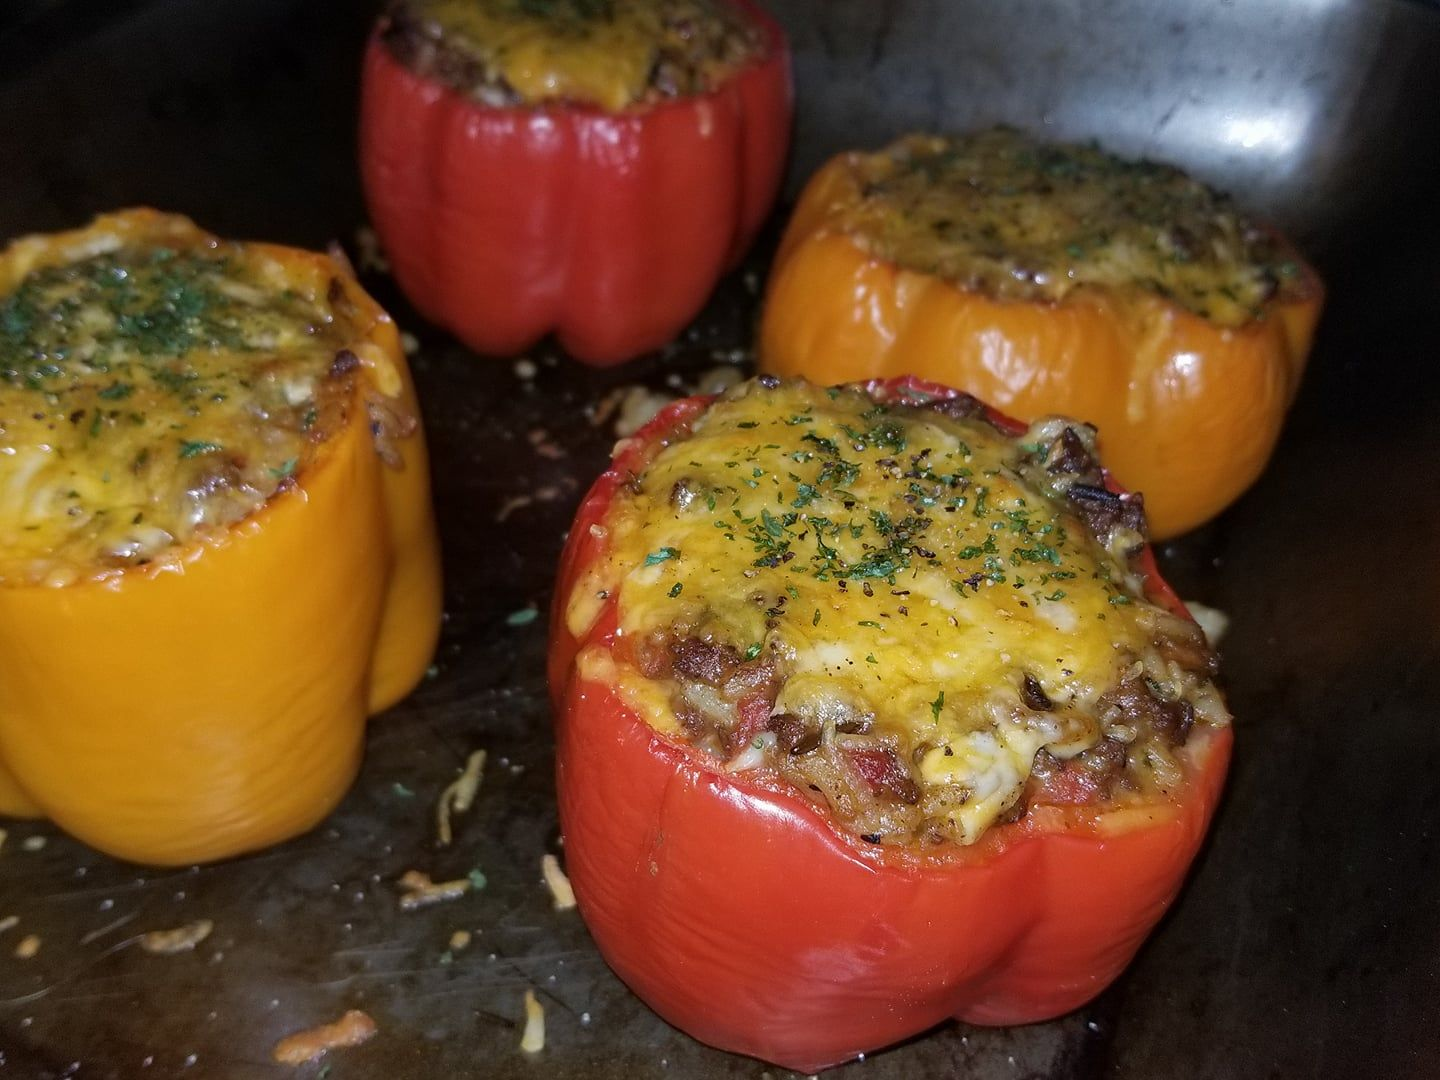 Ground Beef Stuffed Green Bell Peppers With Cheese Recipe Stuffed Peppers Grassfed Beef Recipes Sliders Recipes Beef